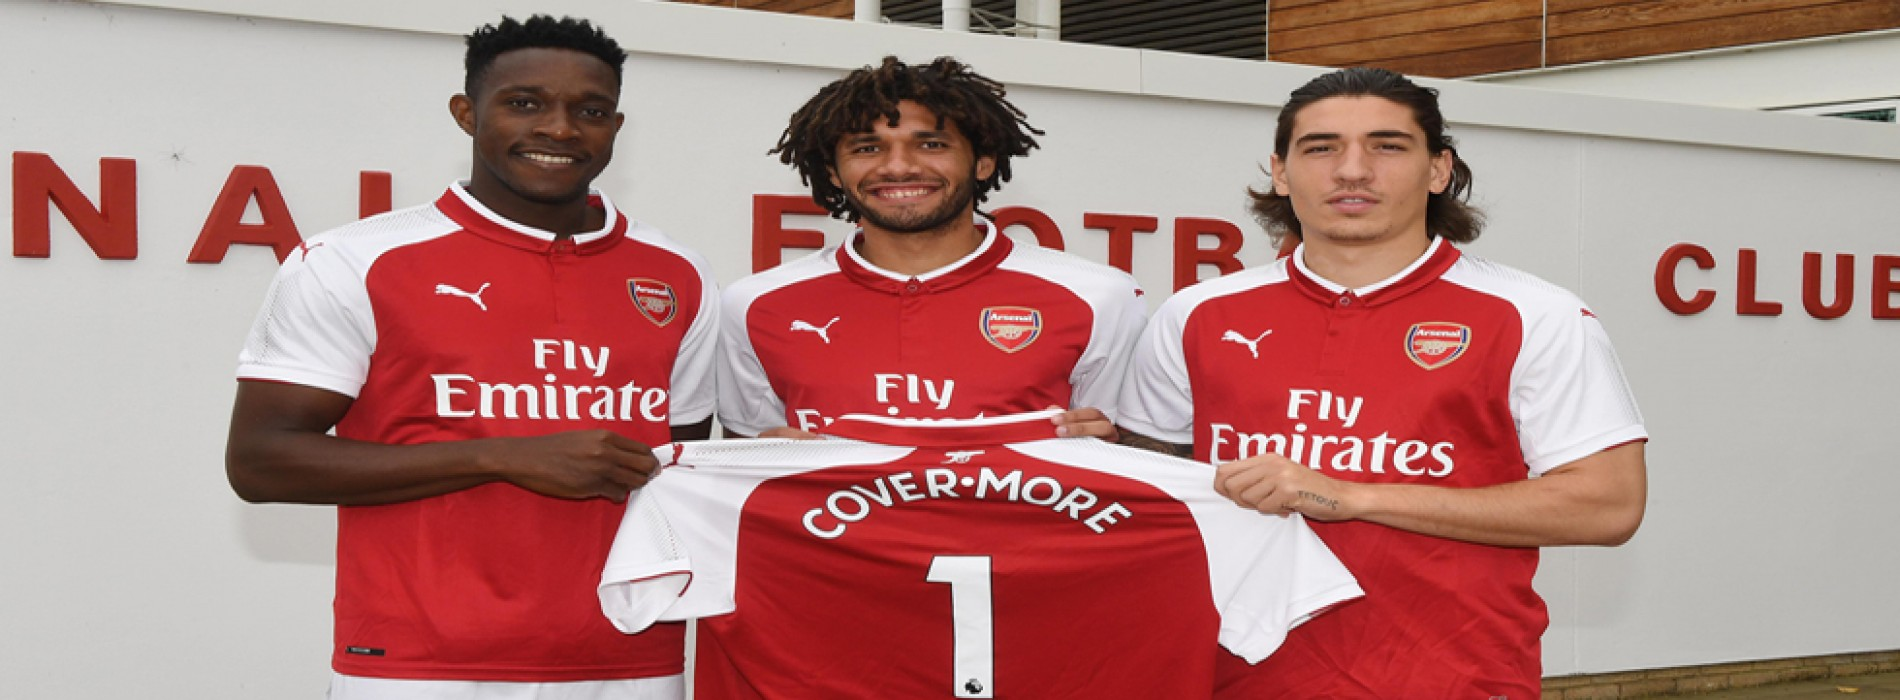 Arsenal welcomes Cover-More as official travel insurance partner